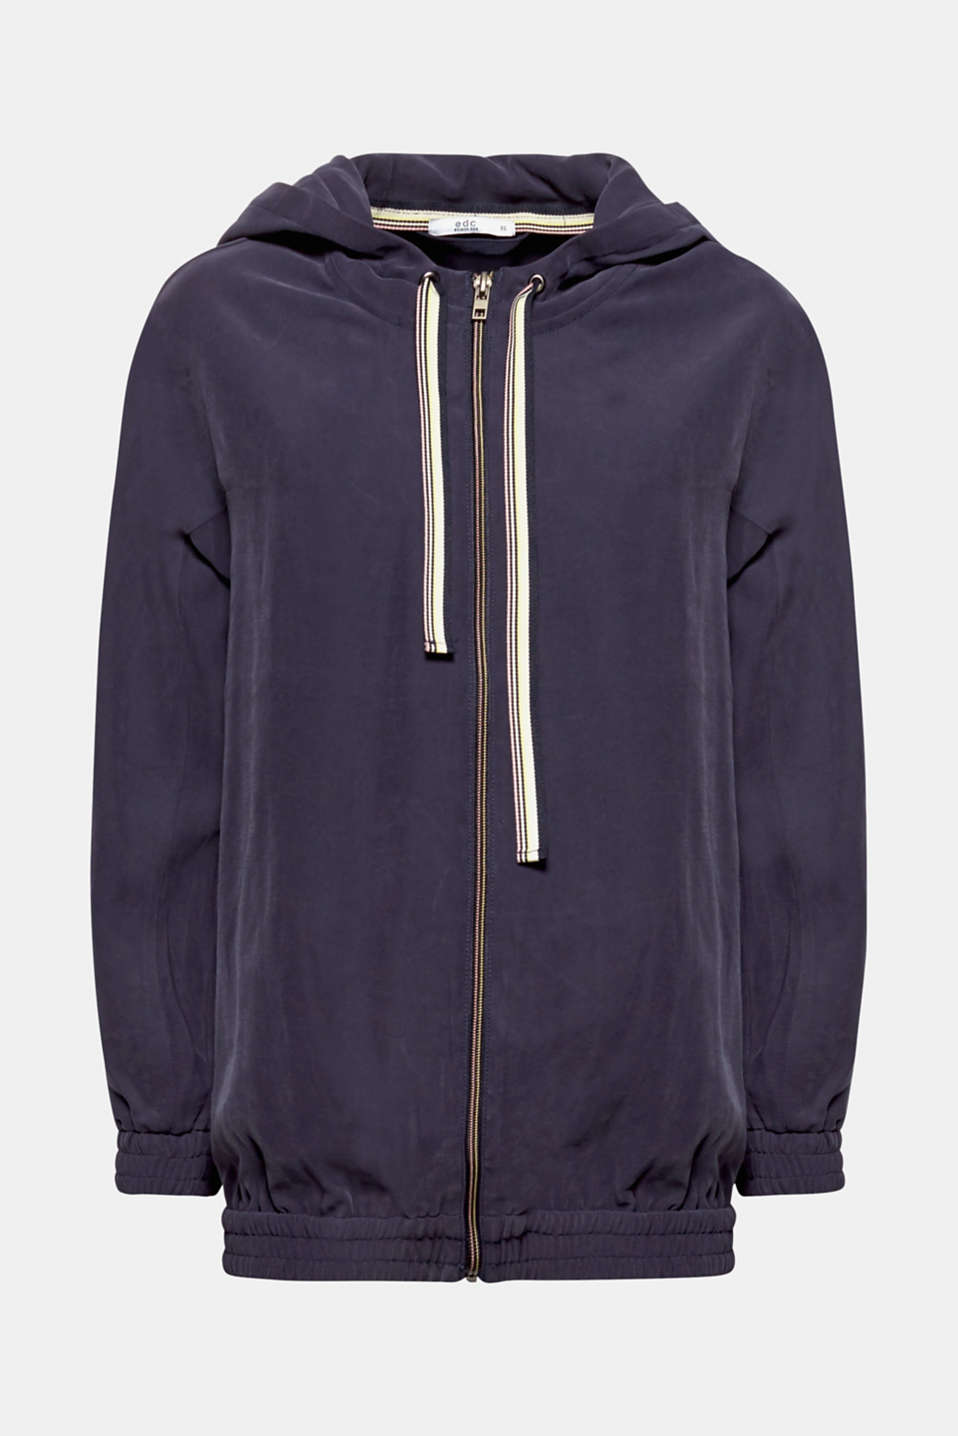 Sporty, casual and really easy to mix and match! The twill with a matte sheen and the striped drawstring ties give this hooded jacket its sporty look.